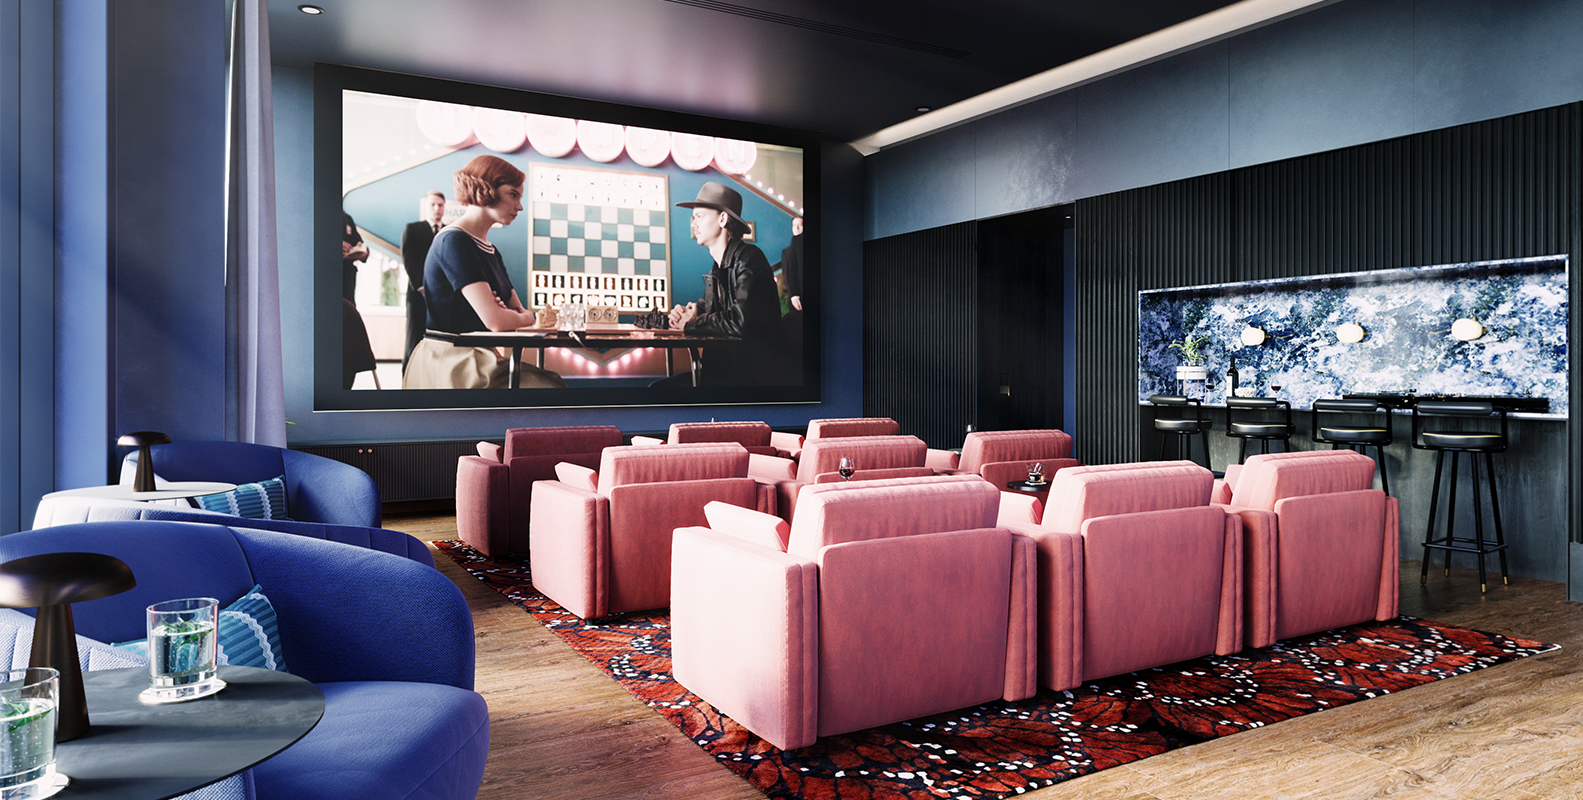 Image of cinema room with movie on big screen